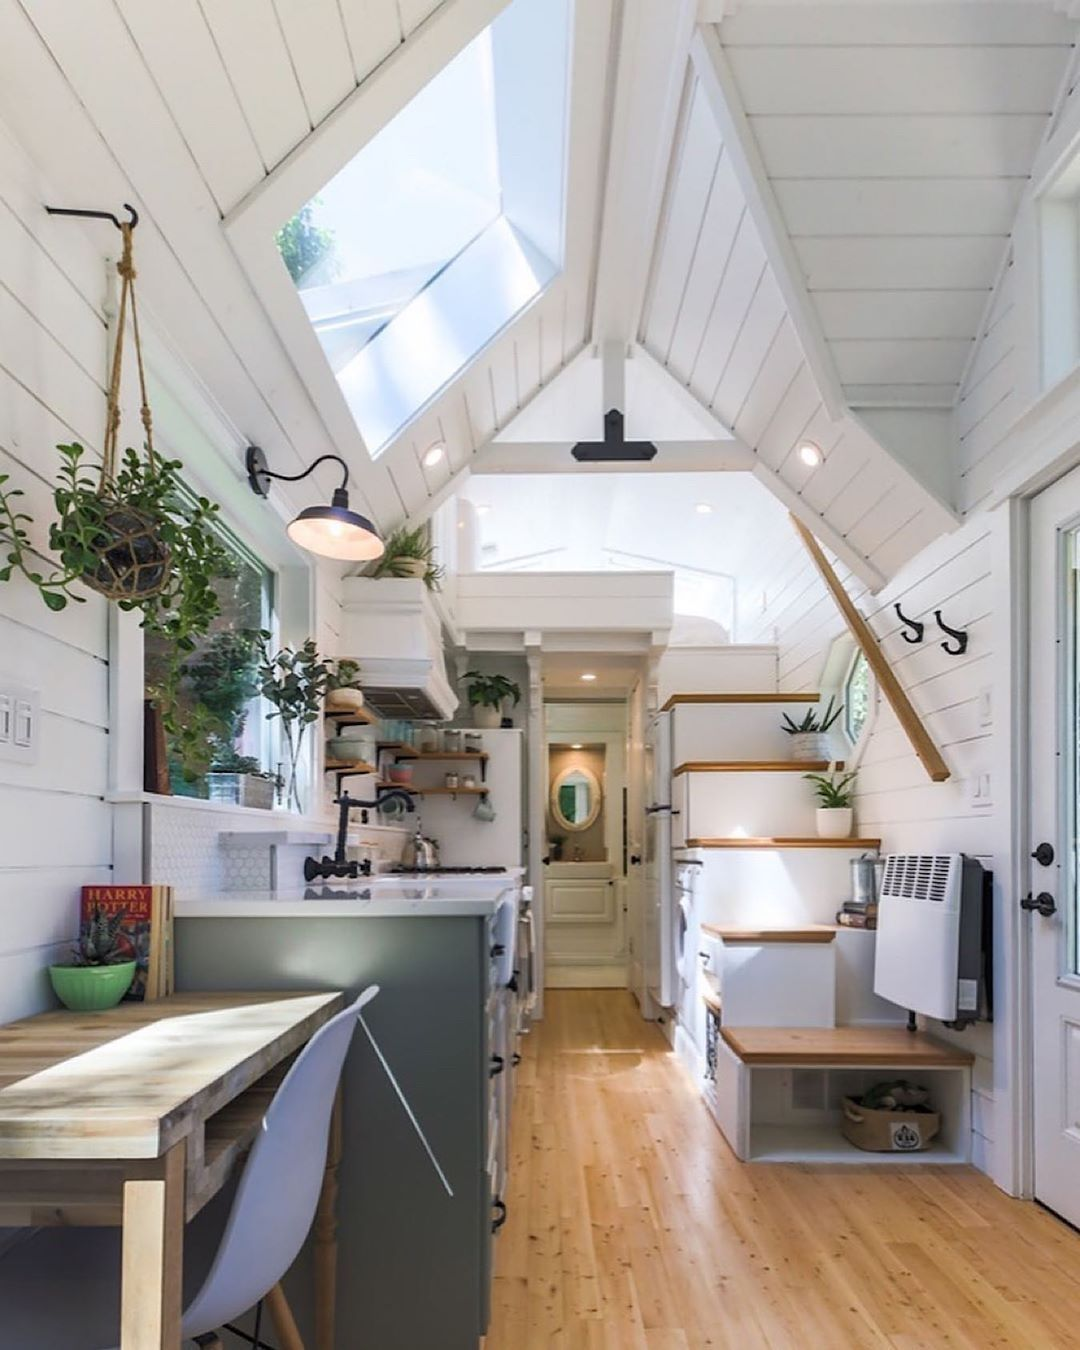 16 Shabby Chic Tiny House Design Ideas to Give You Inspiration